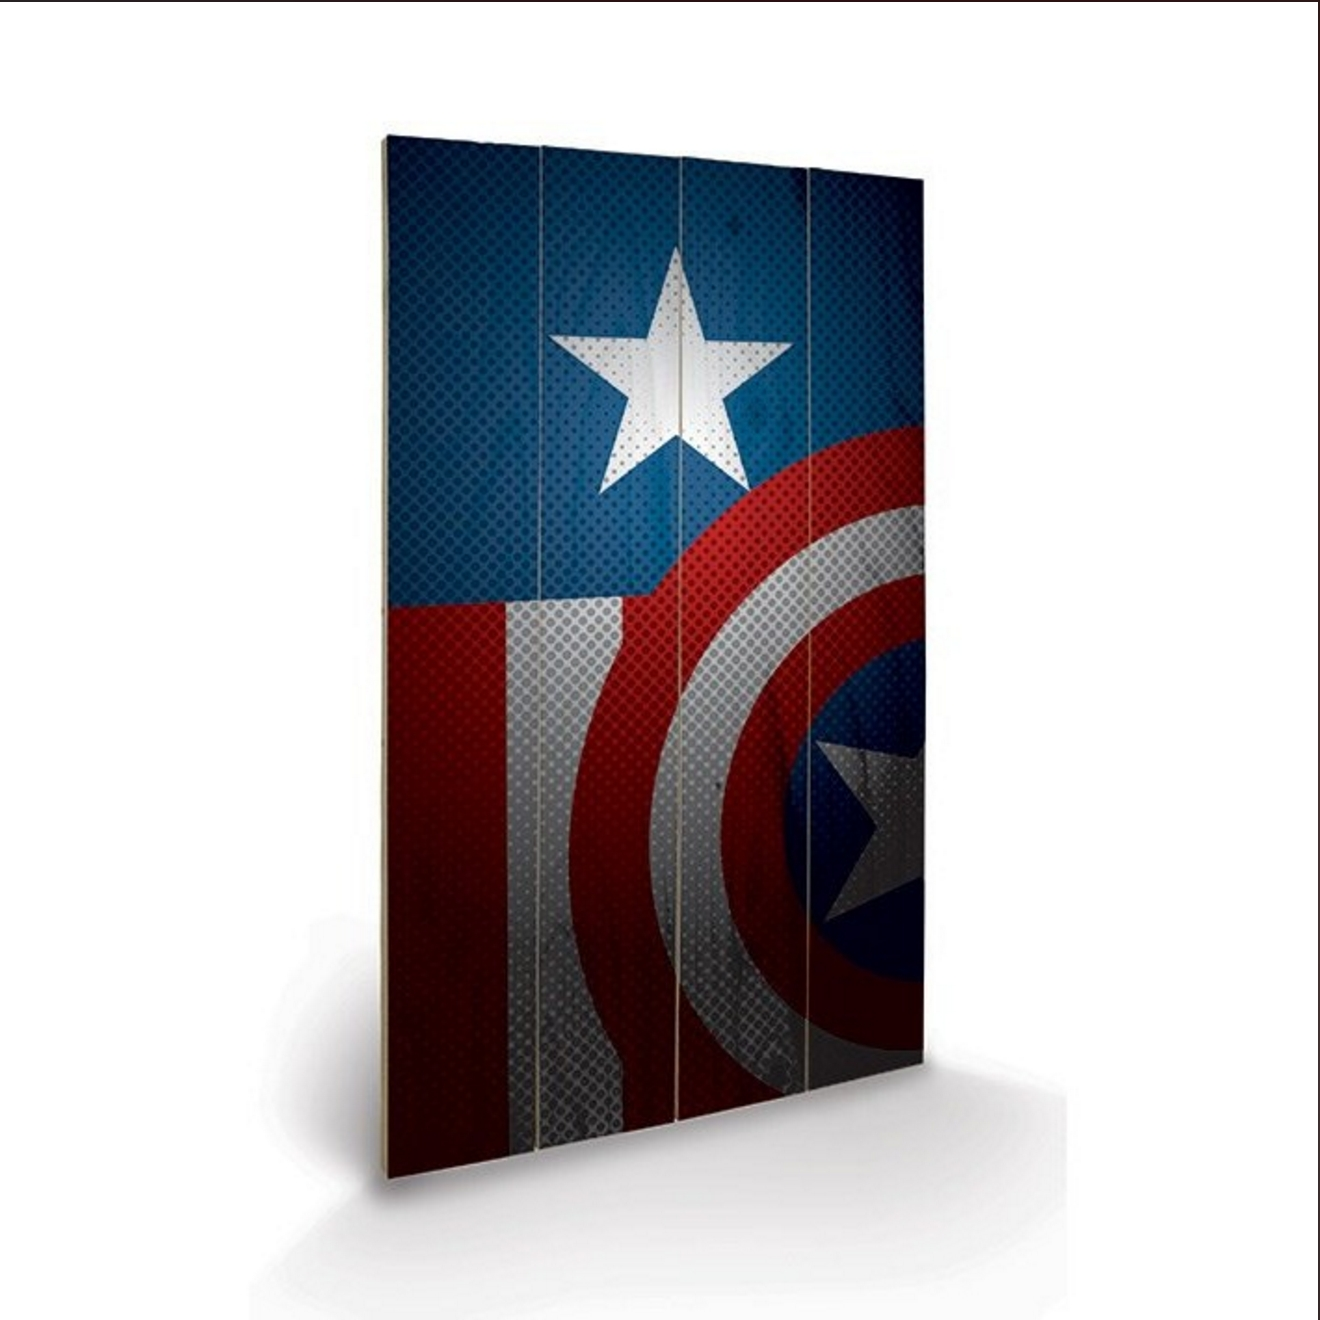 Avengers Assemble Captain America Wooden Wall Art – Spree Within Newest Captain America Wall Art (View 1 of 15)